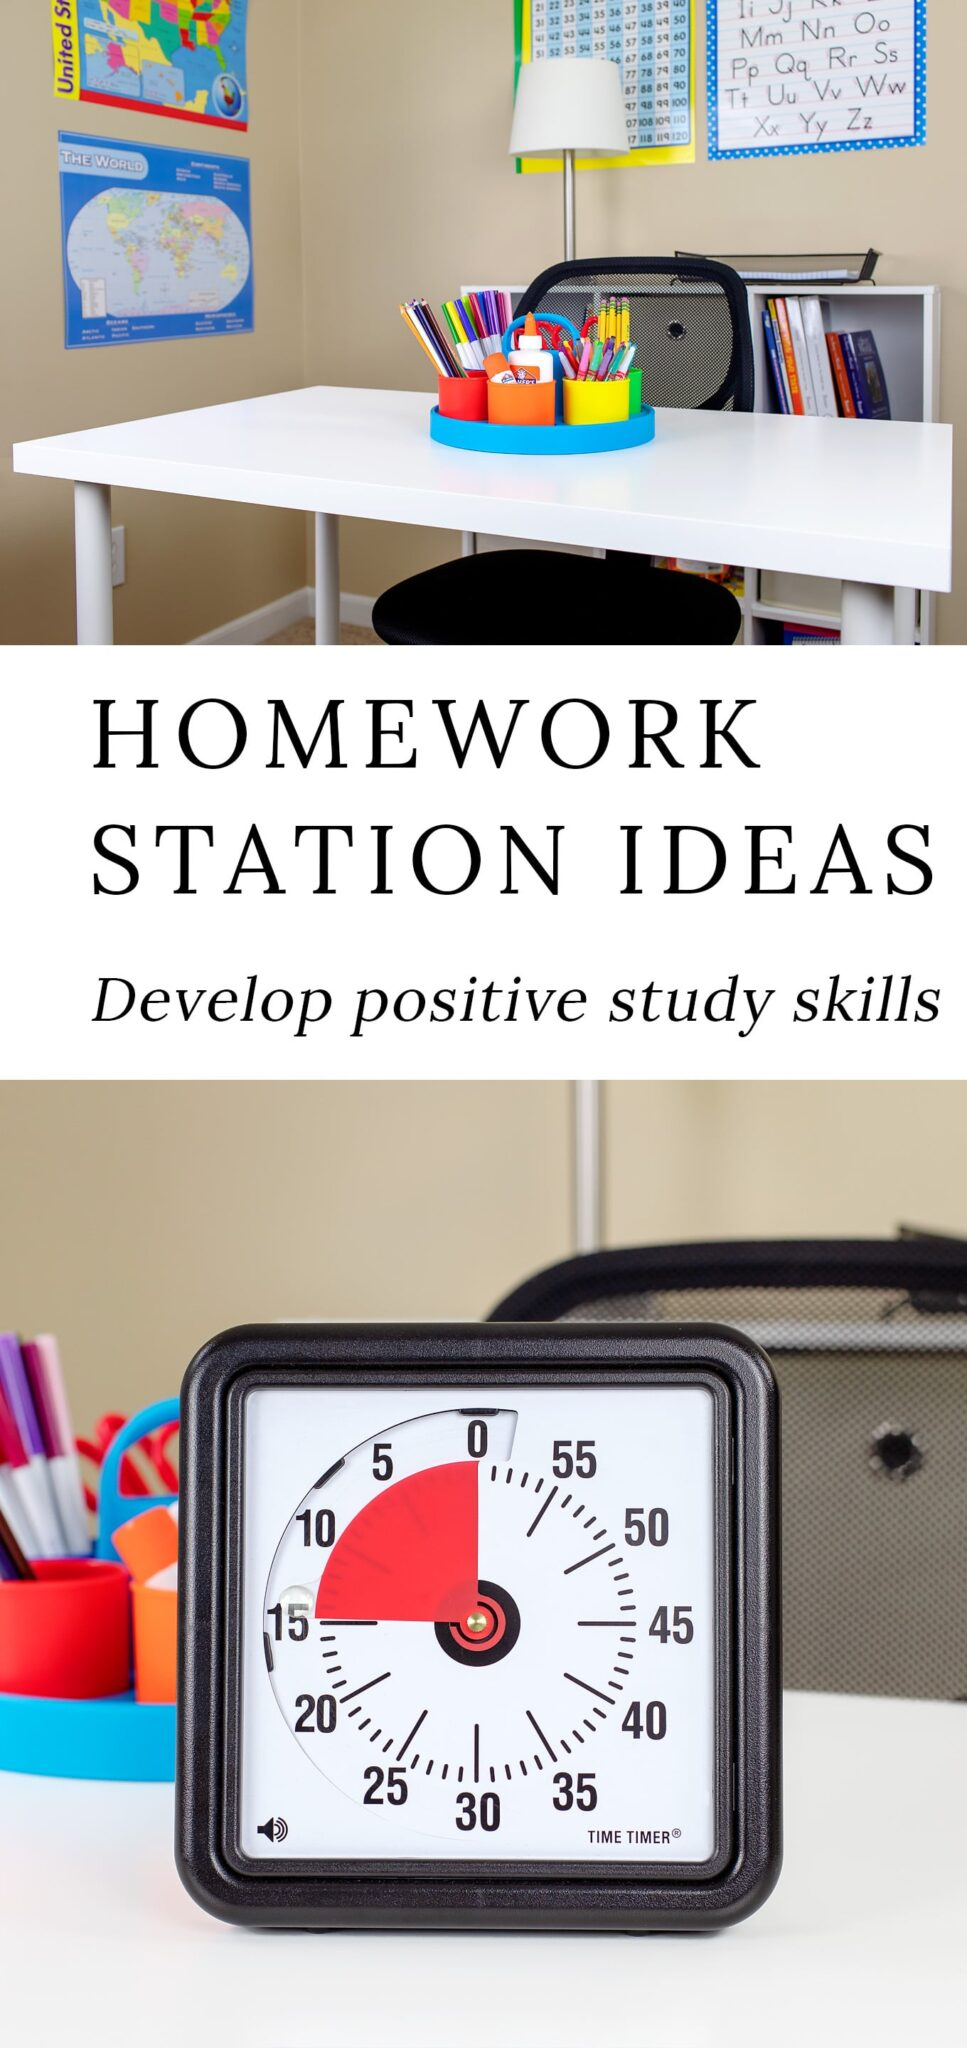 Help kids develop positive study skills, productive work habits, and increased school success by creating a designated homework station in your home.#homeworkstation #homework #studyskills #backtoschool #homeworkstationideas #kidsstudystation #studyspaceideas #homeworknook #education #homeschoolroom via @firefliesandmudpies